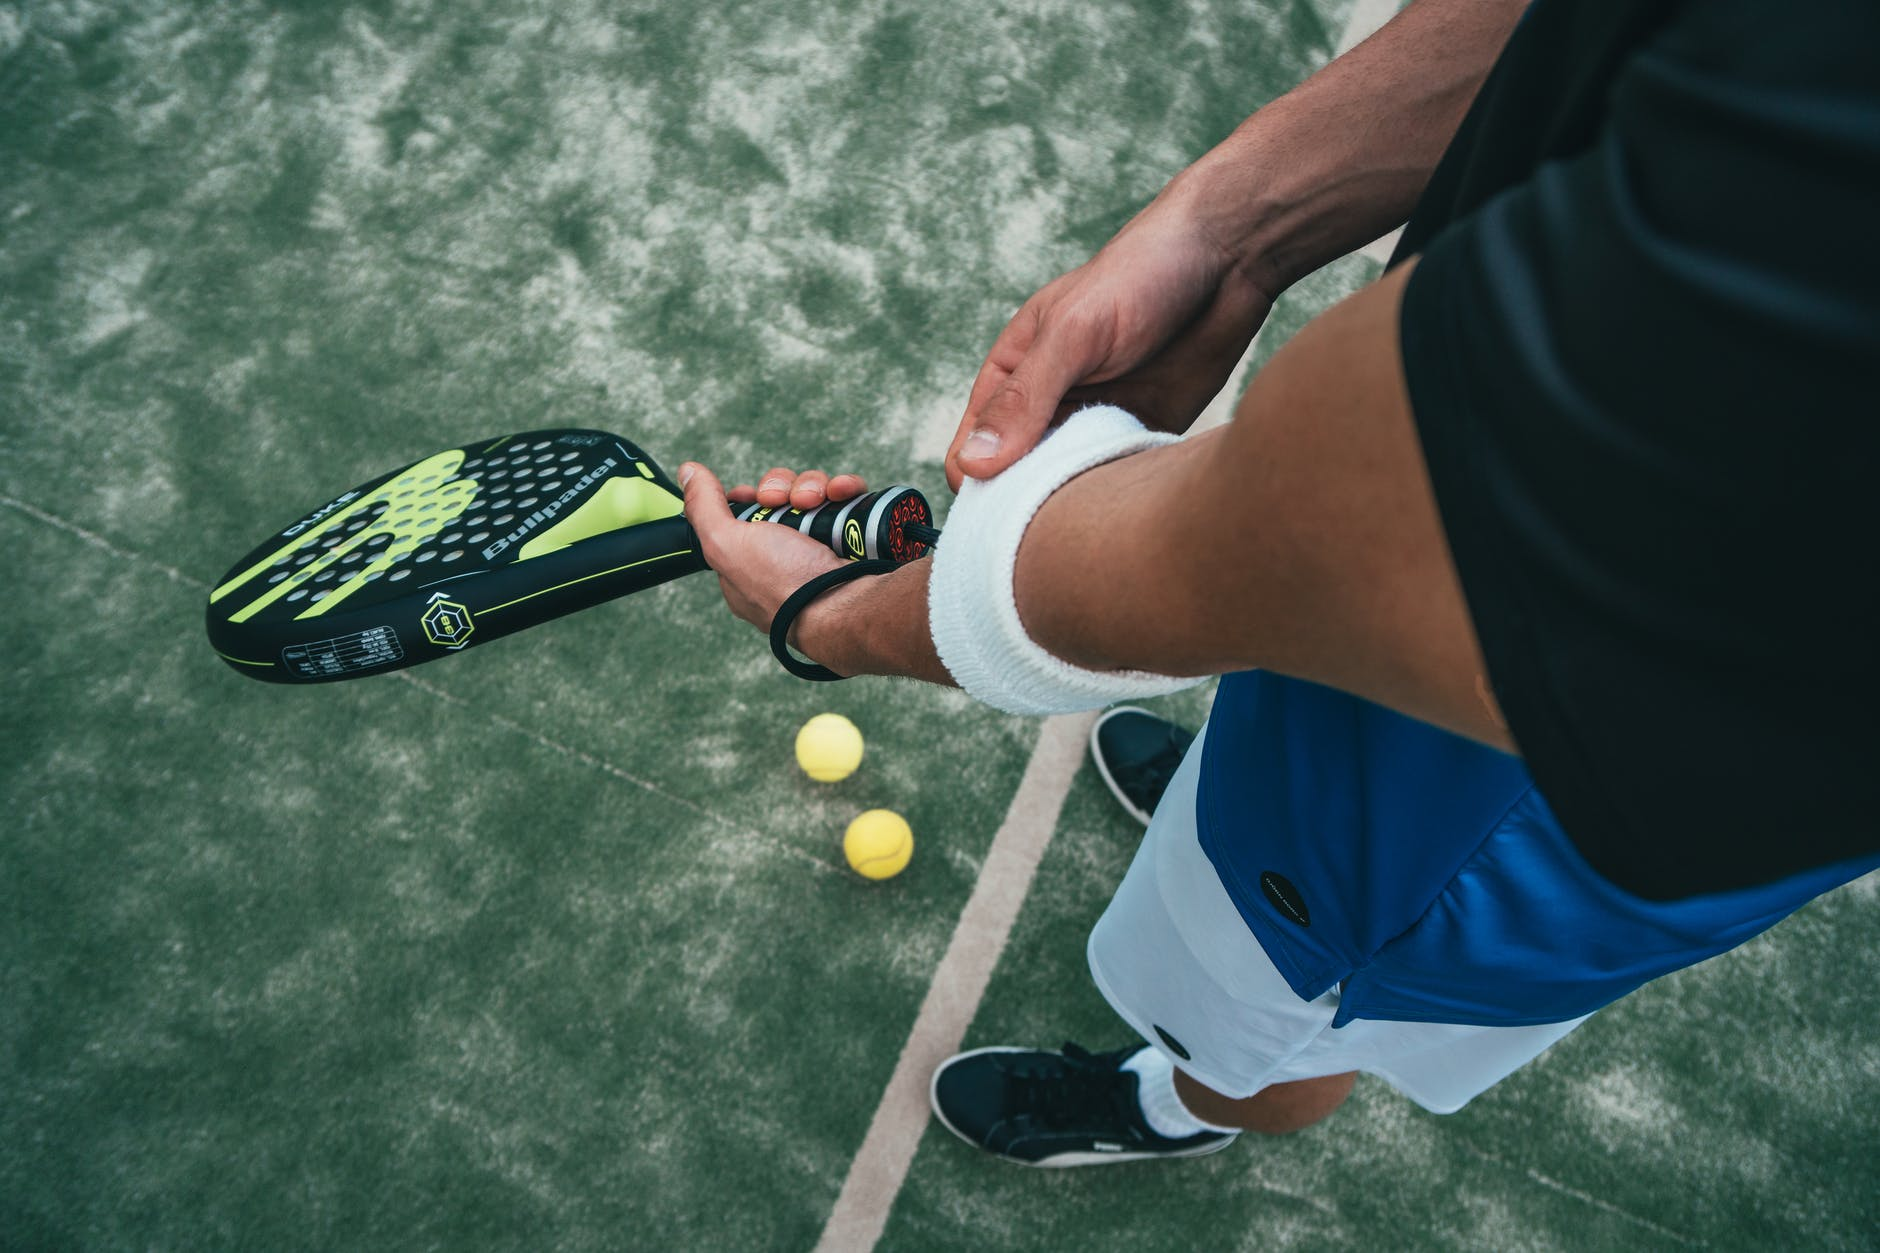 person holding tennis rocket